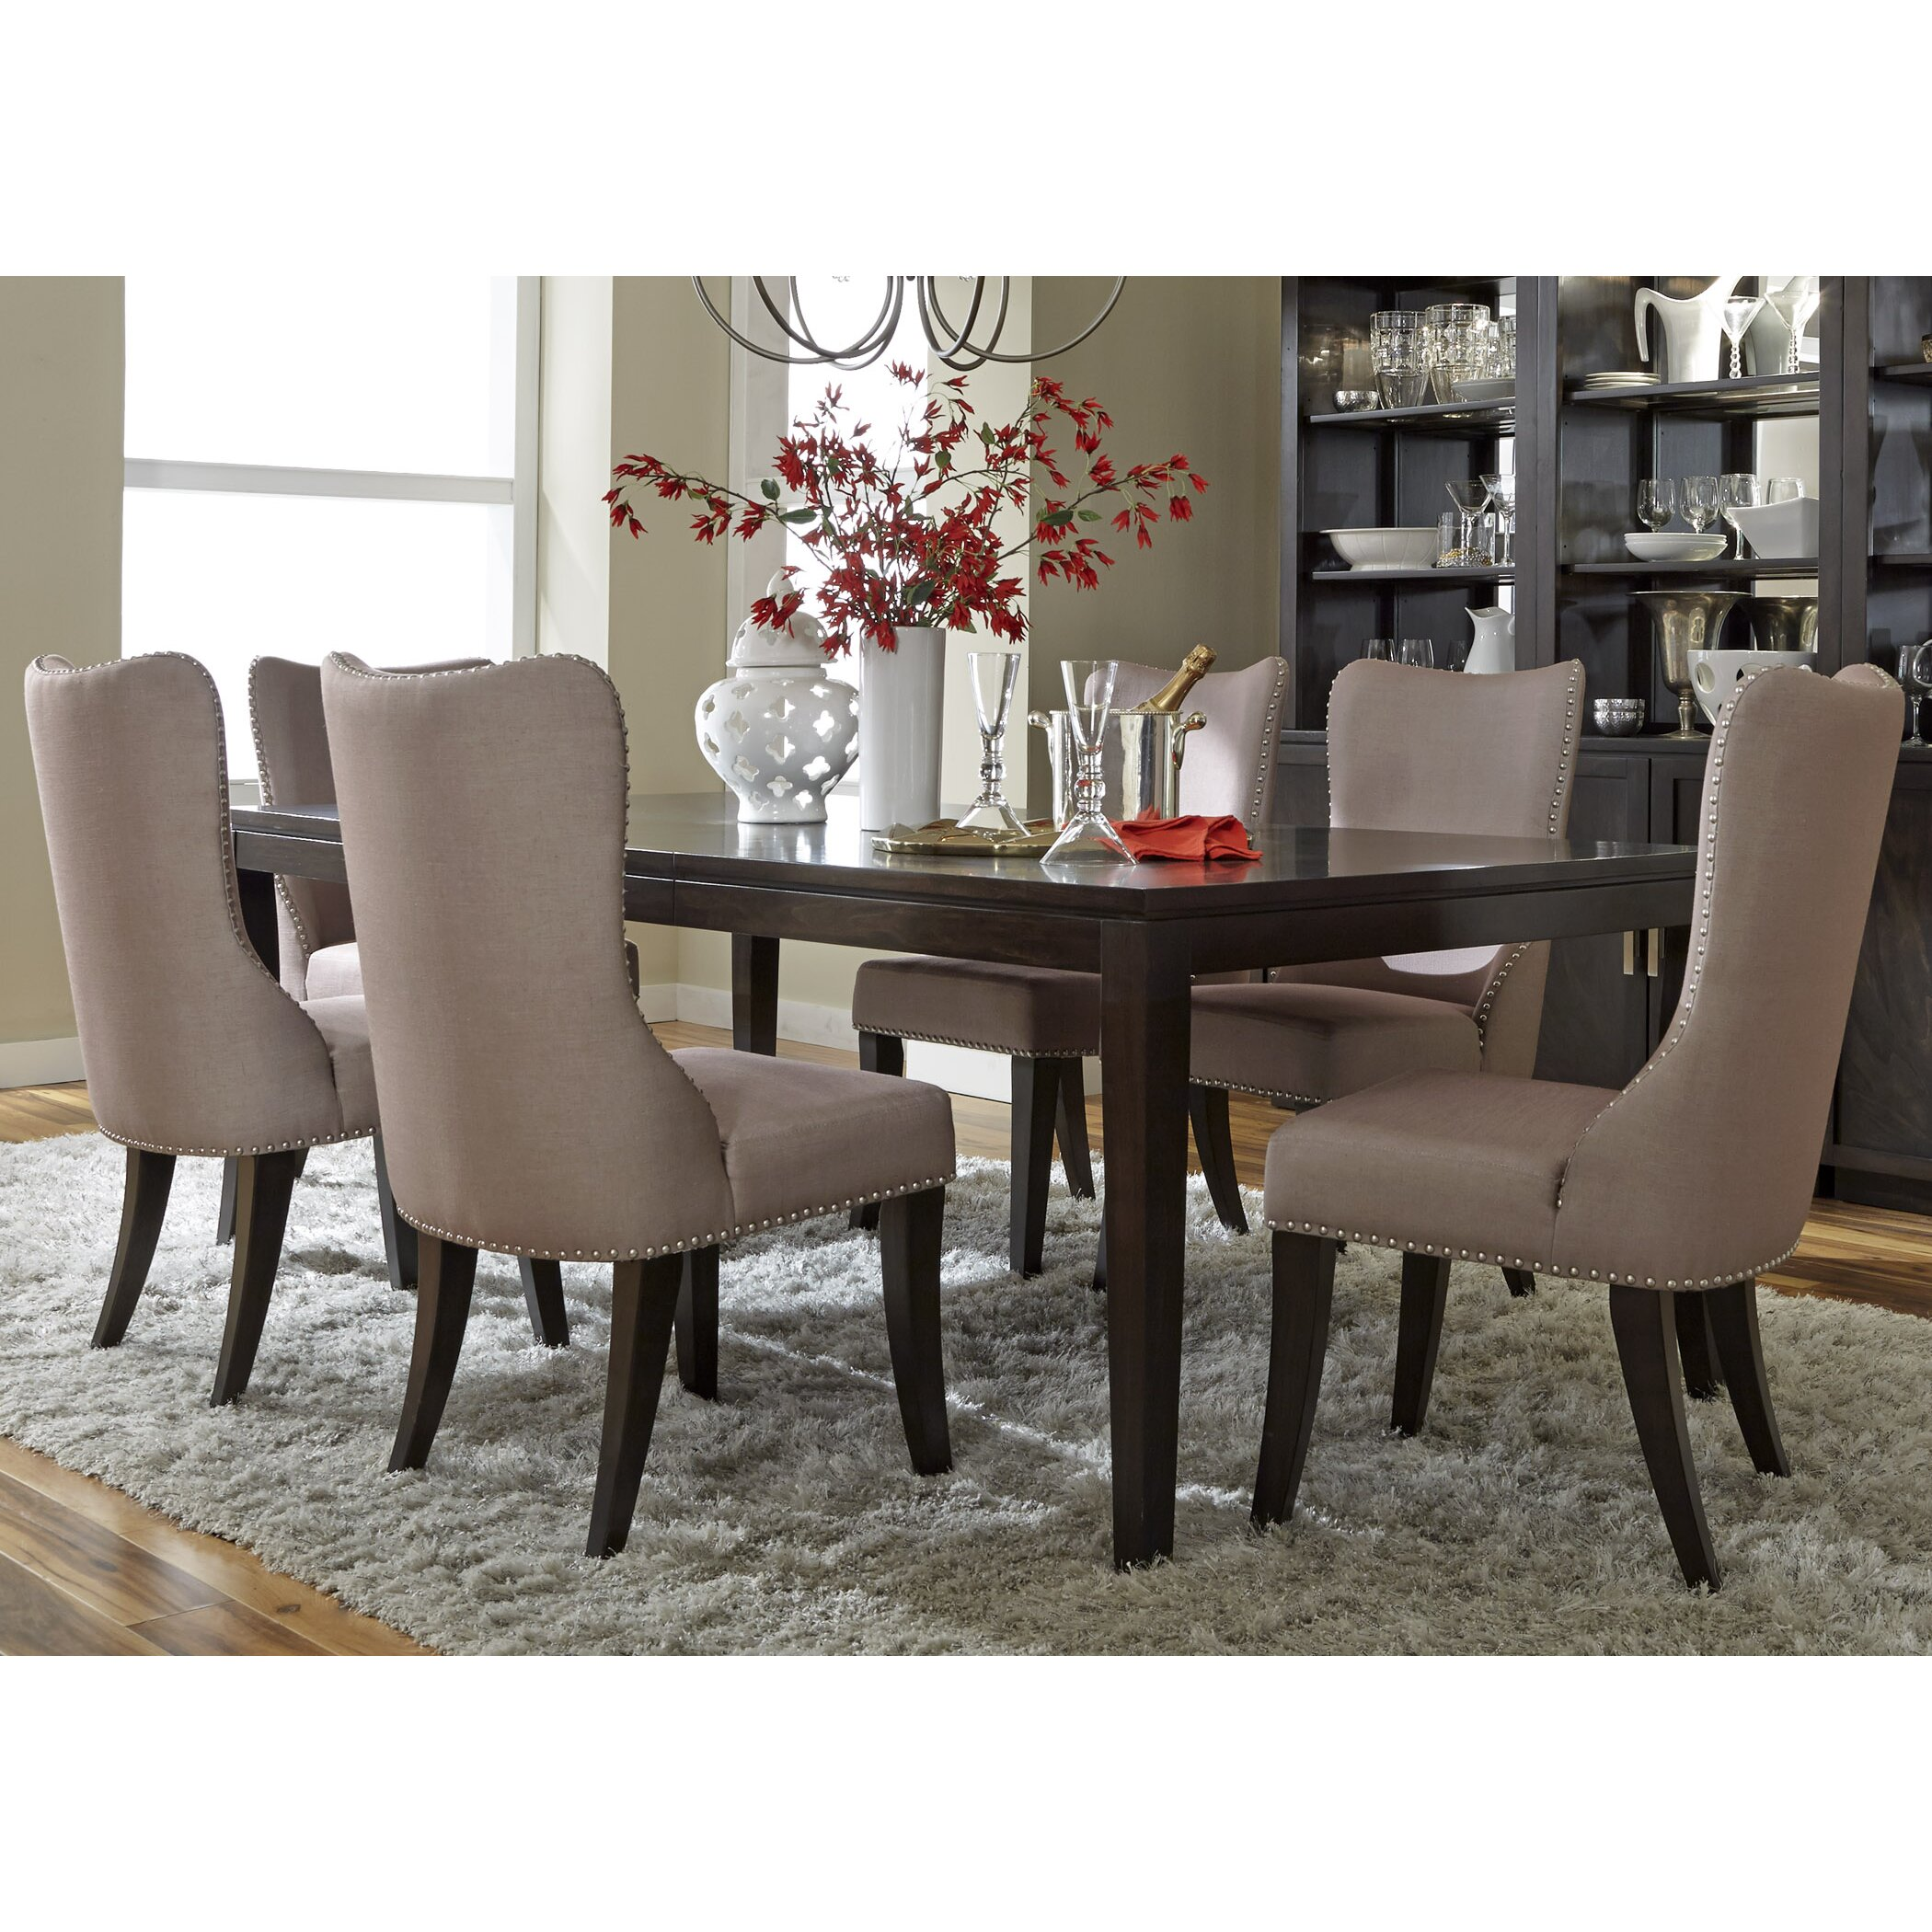 Liberty furniture 7 piece dining set reviews wayfair for Furniture 7 reviews